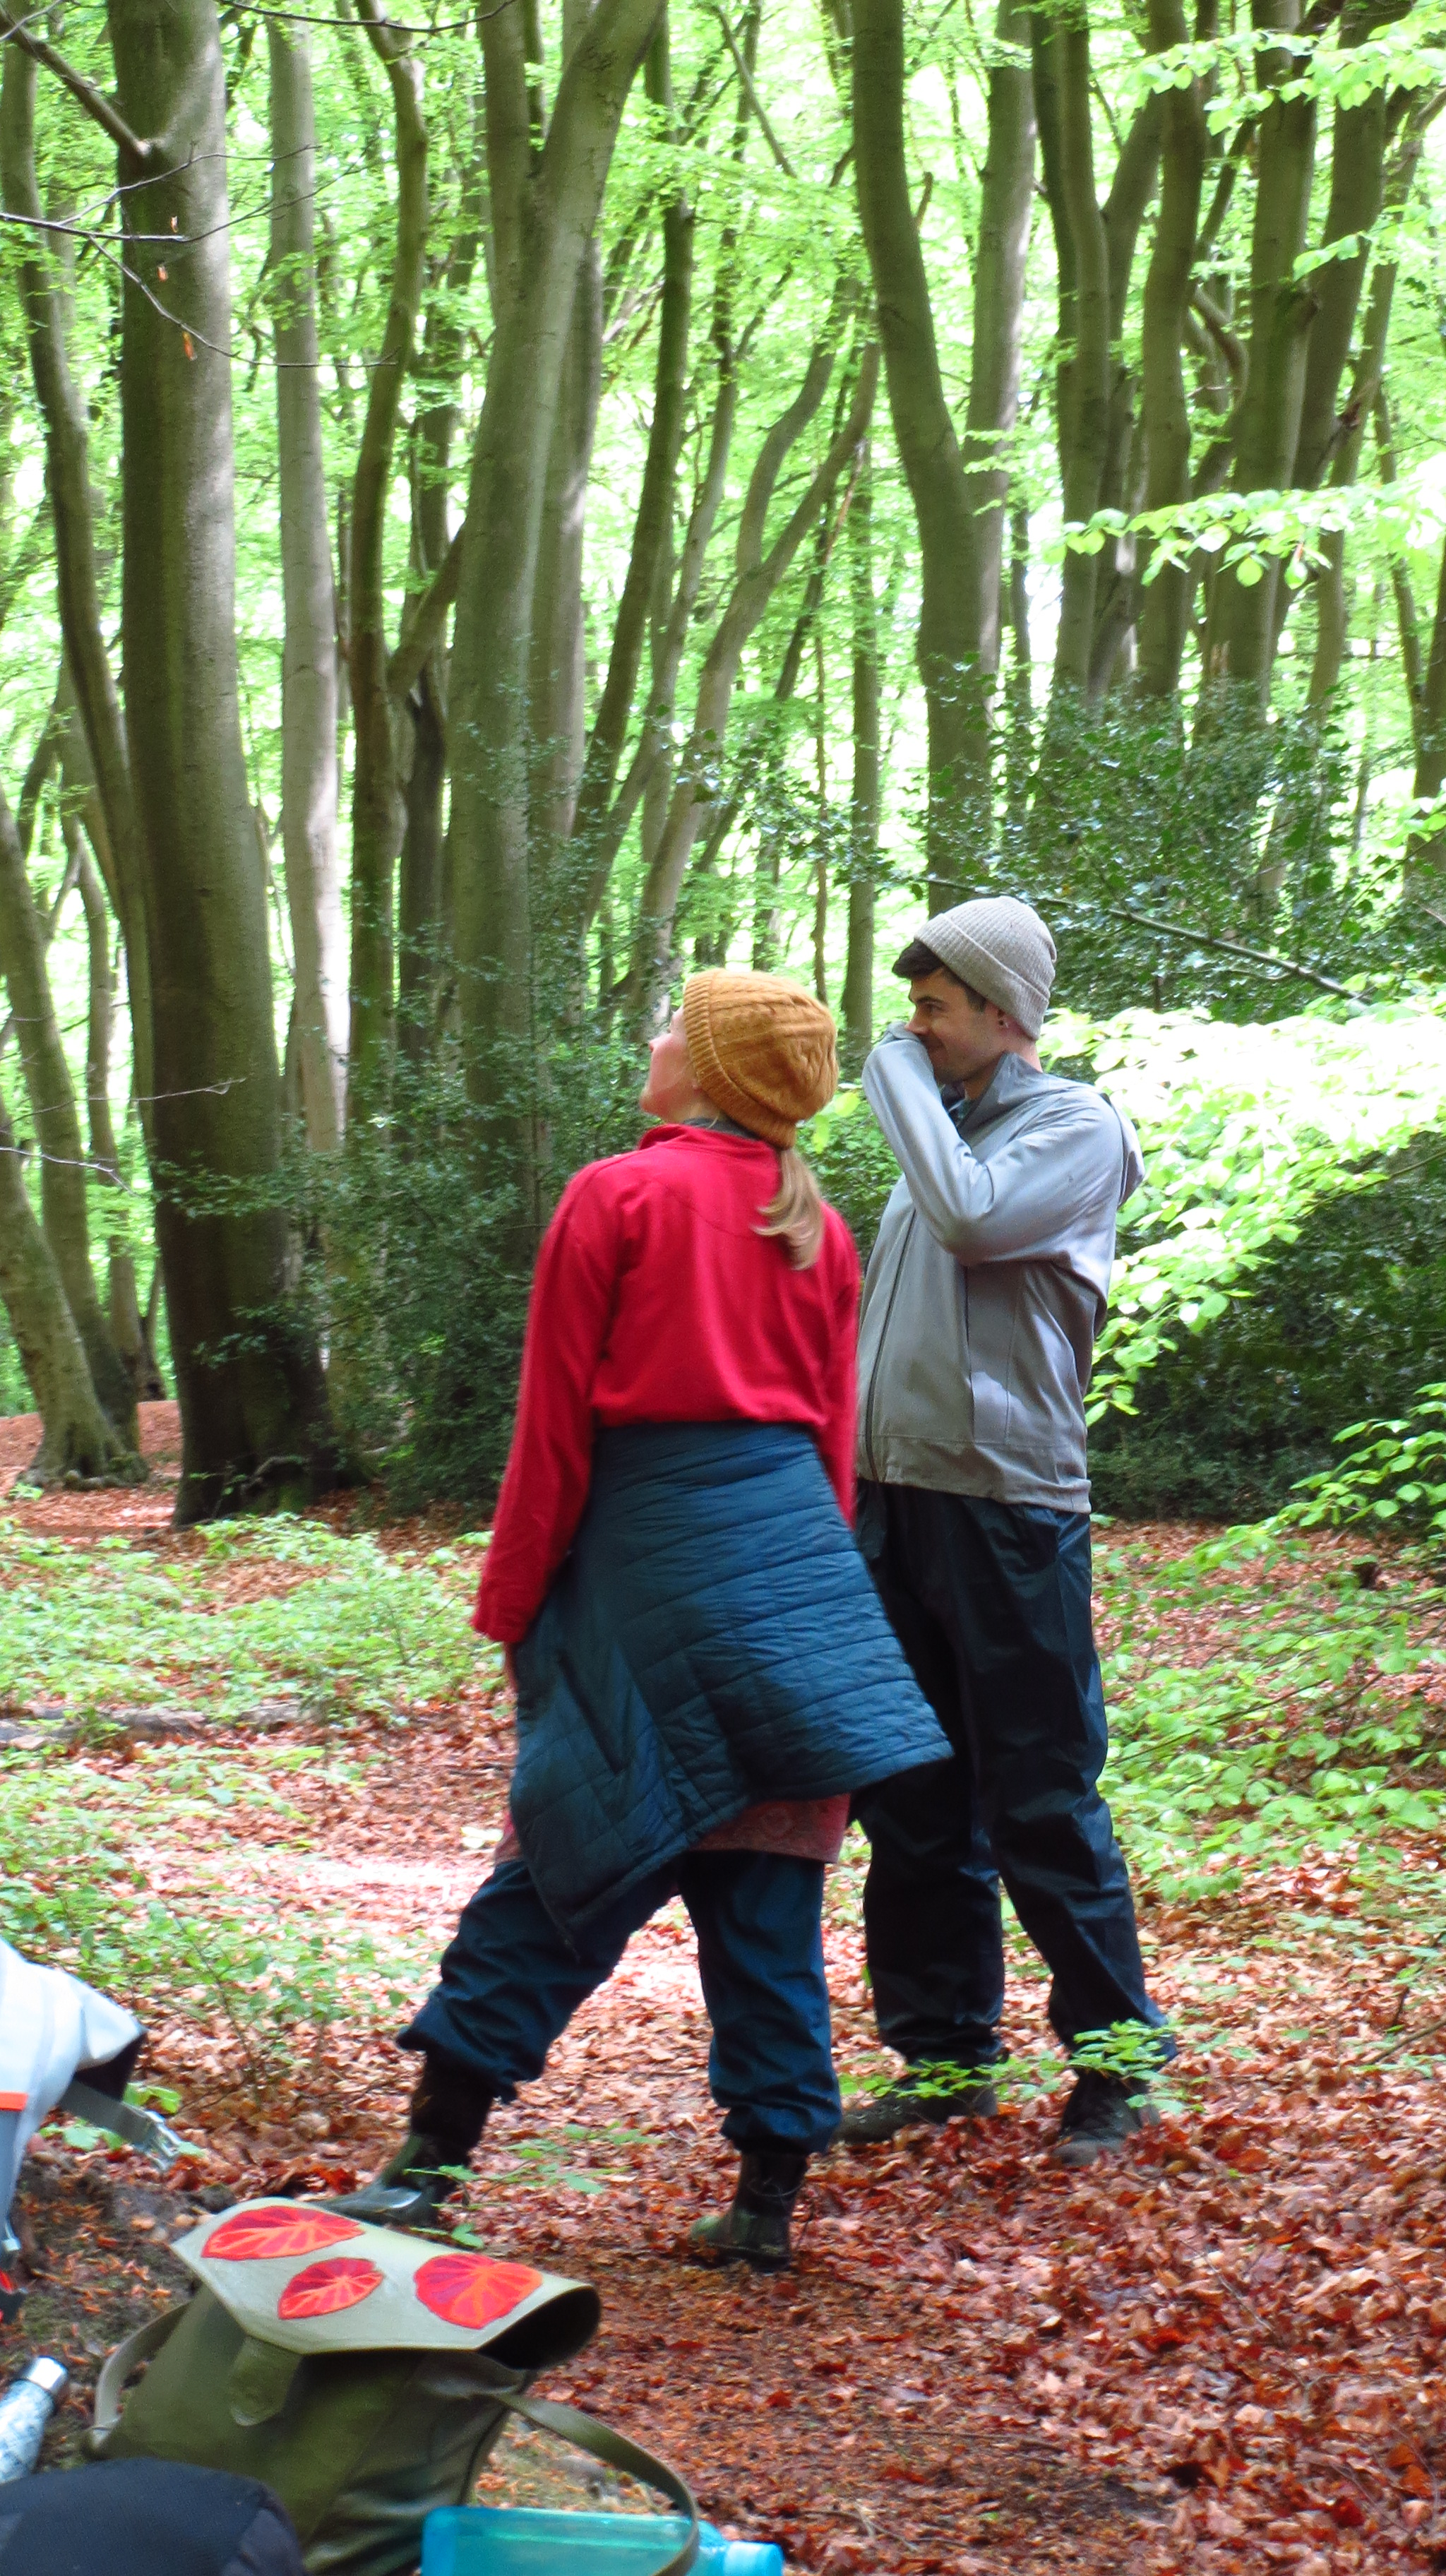 talking in the forest